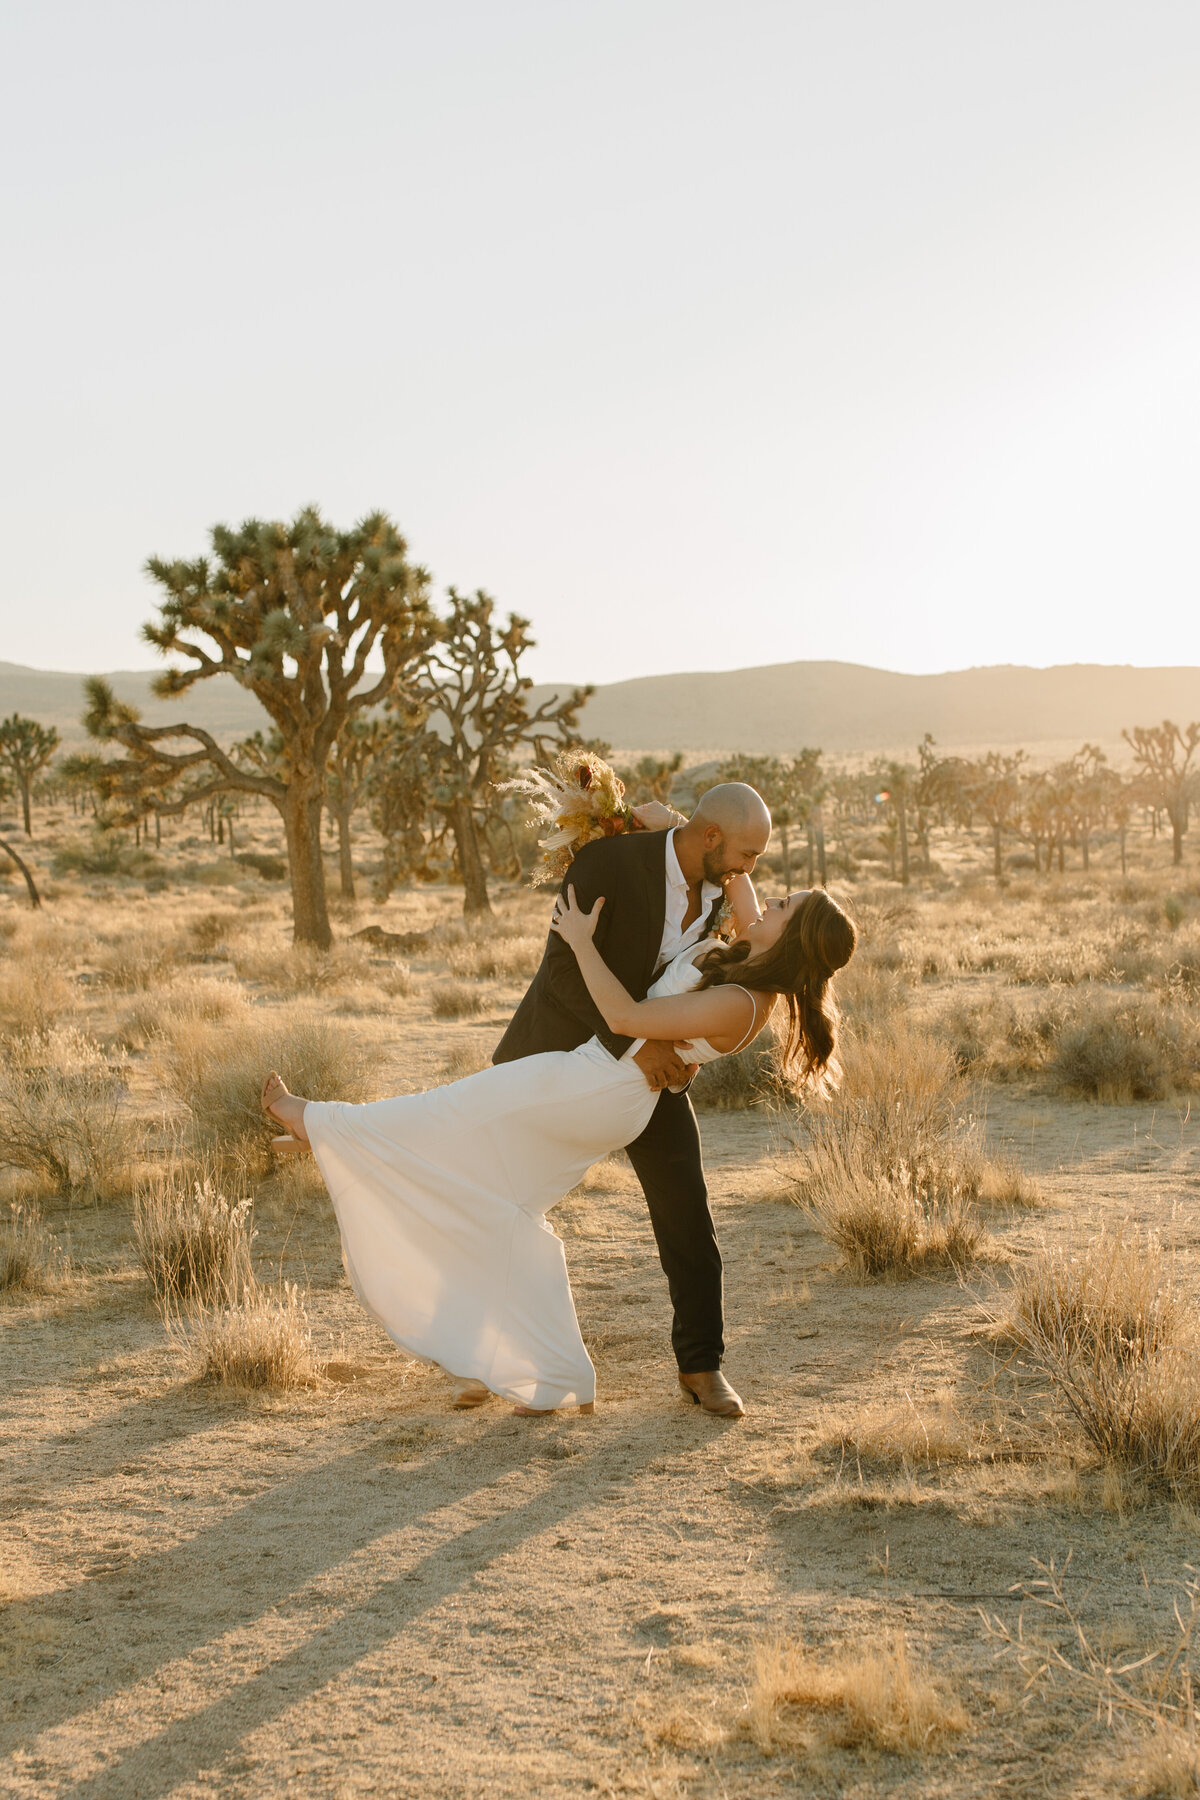 Ashley & Kristian - Joshua Tree National Park Elopement - Tess Laureen Photography @tesslaureen - 124